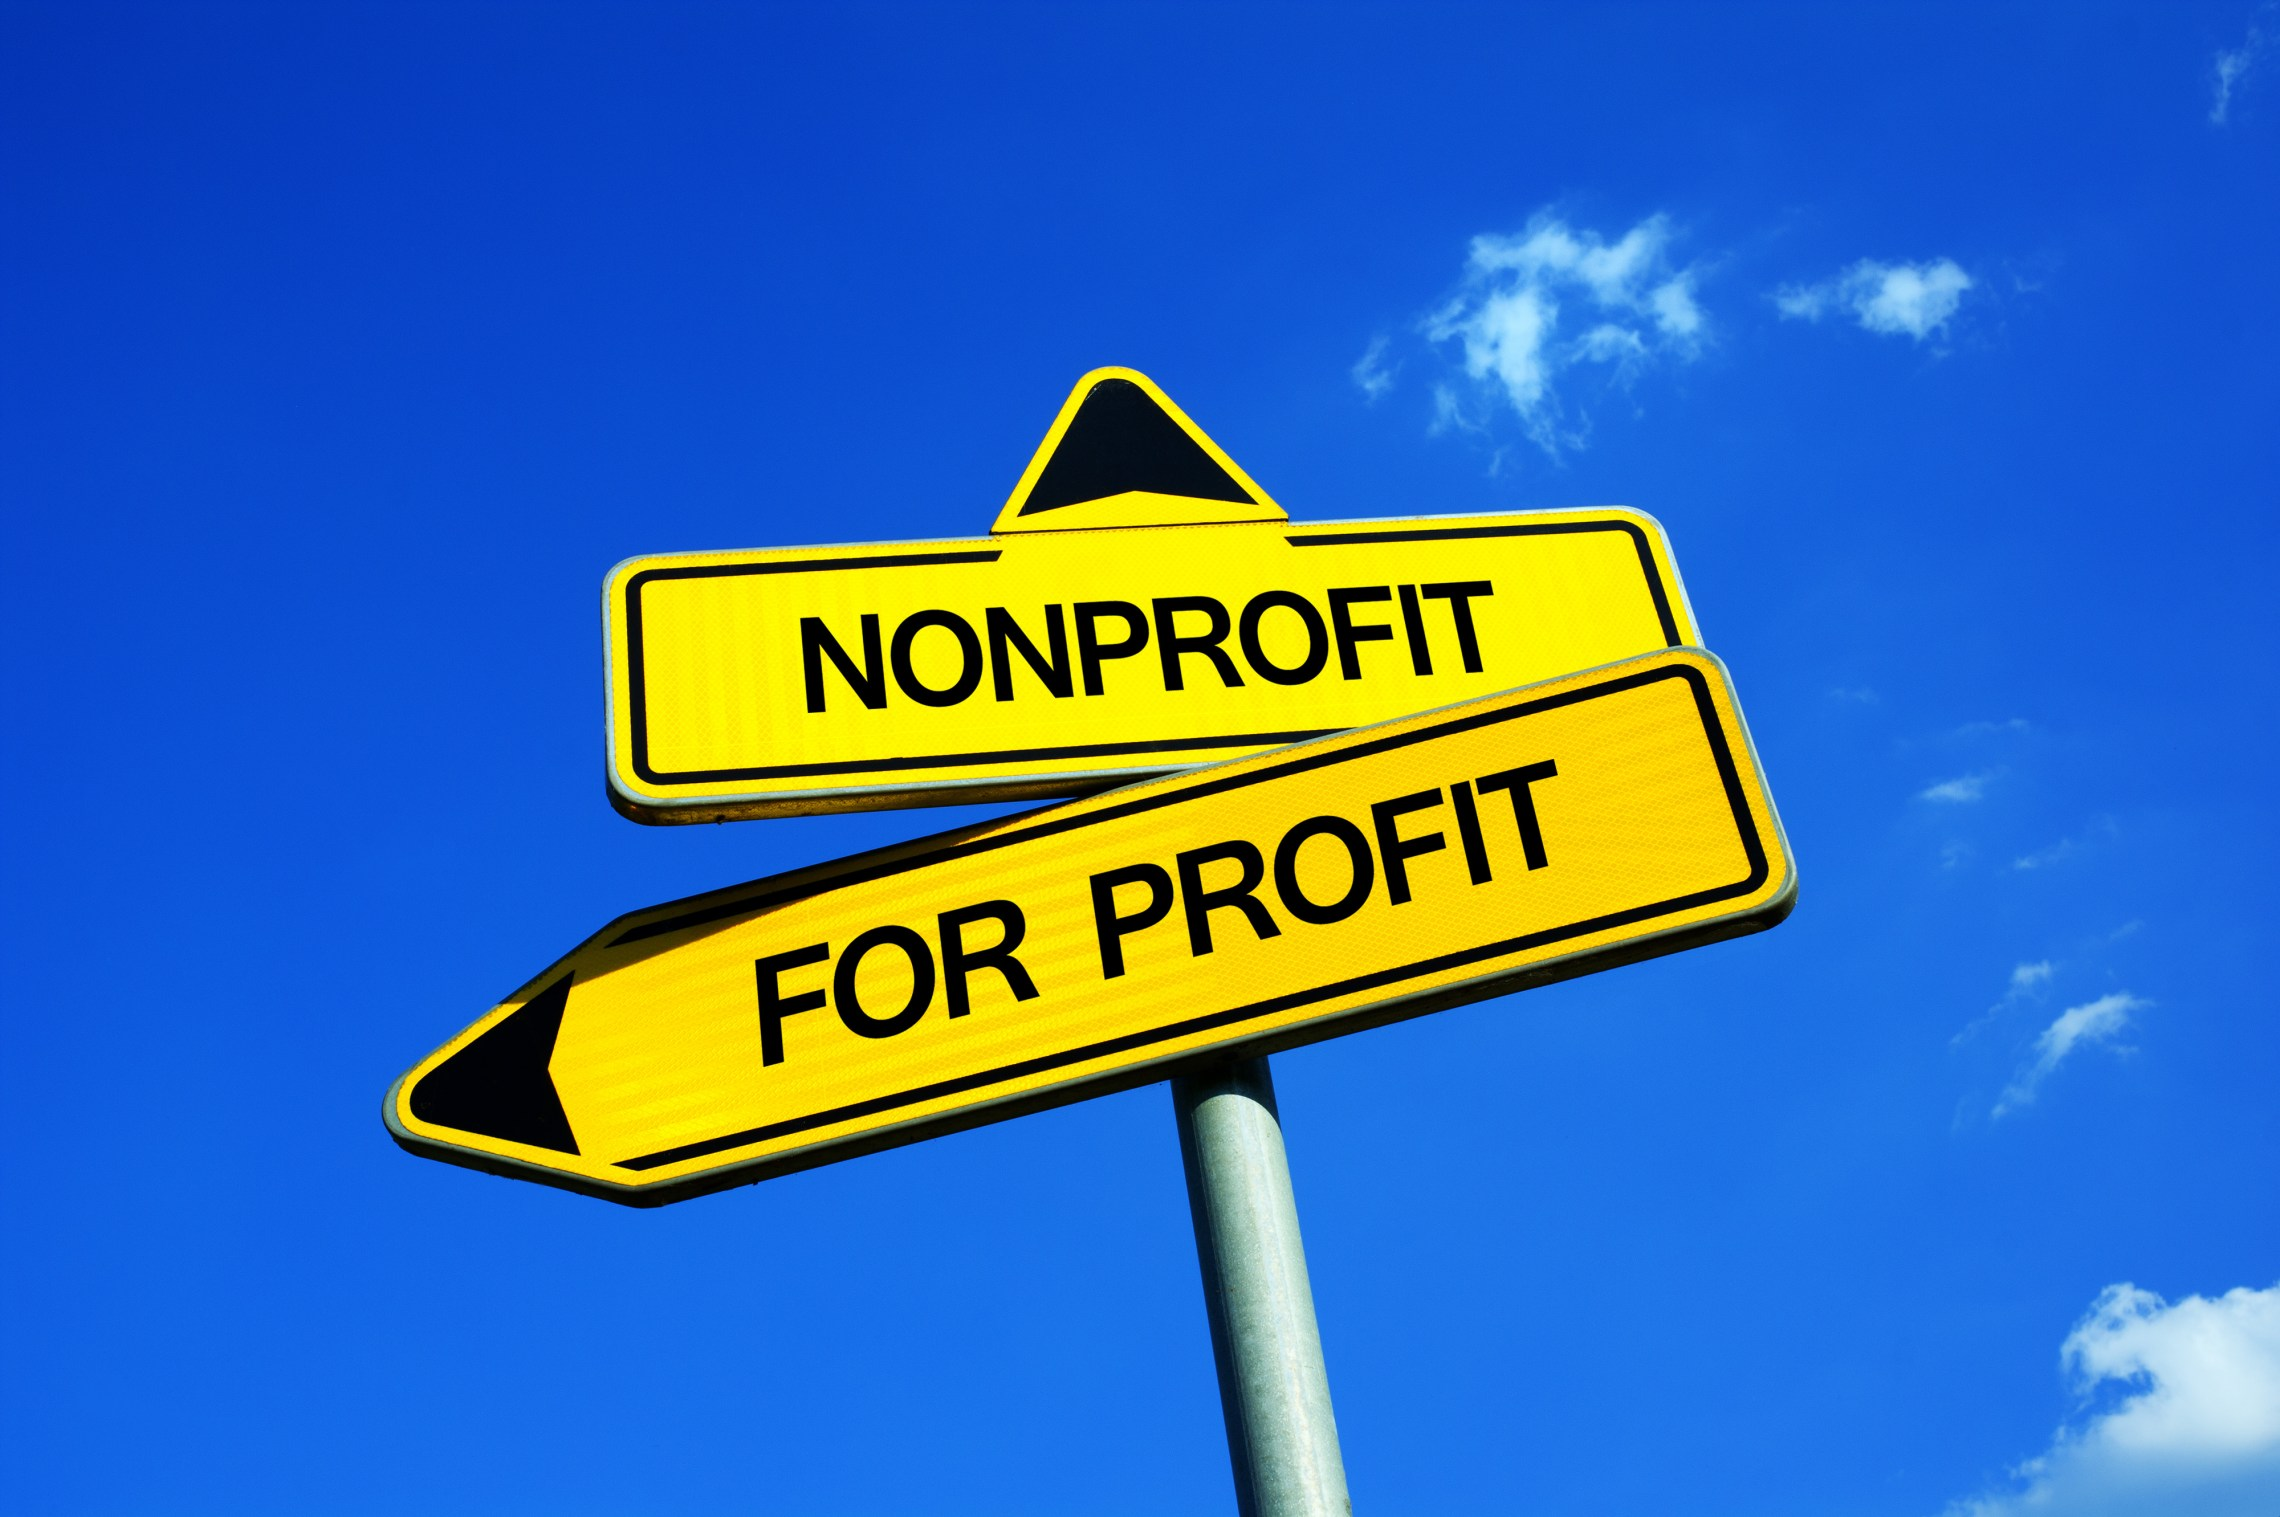 Nonprofit For profit